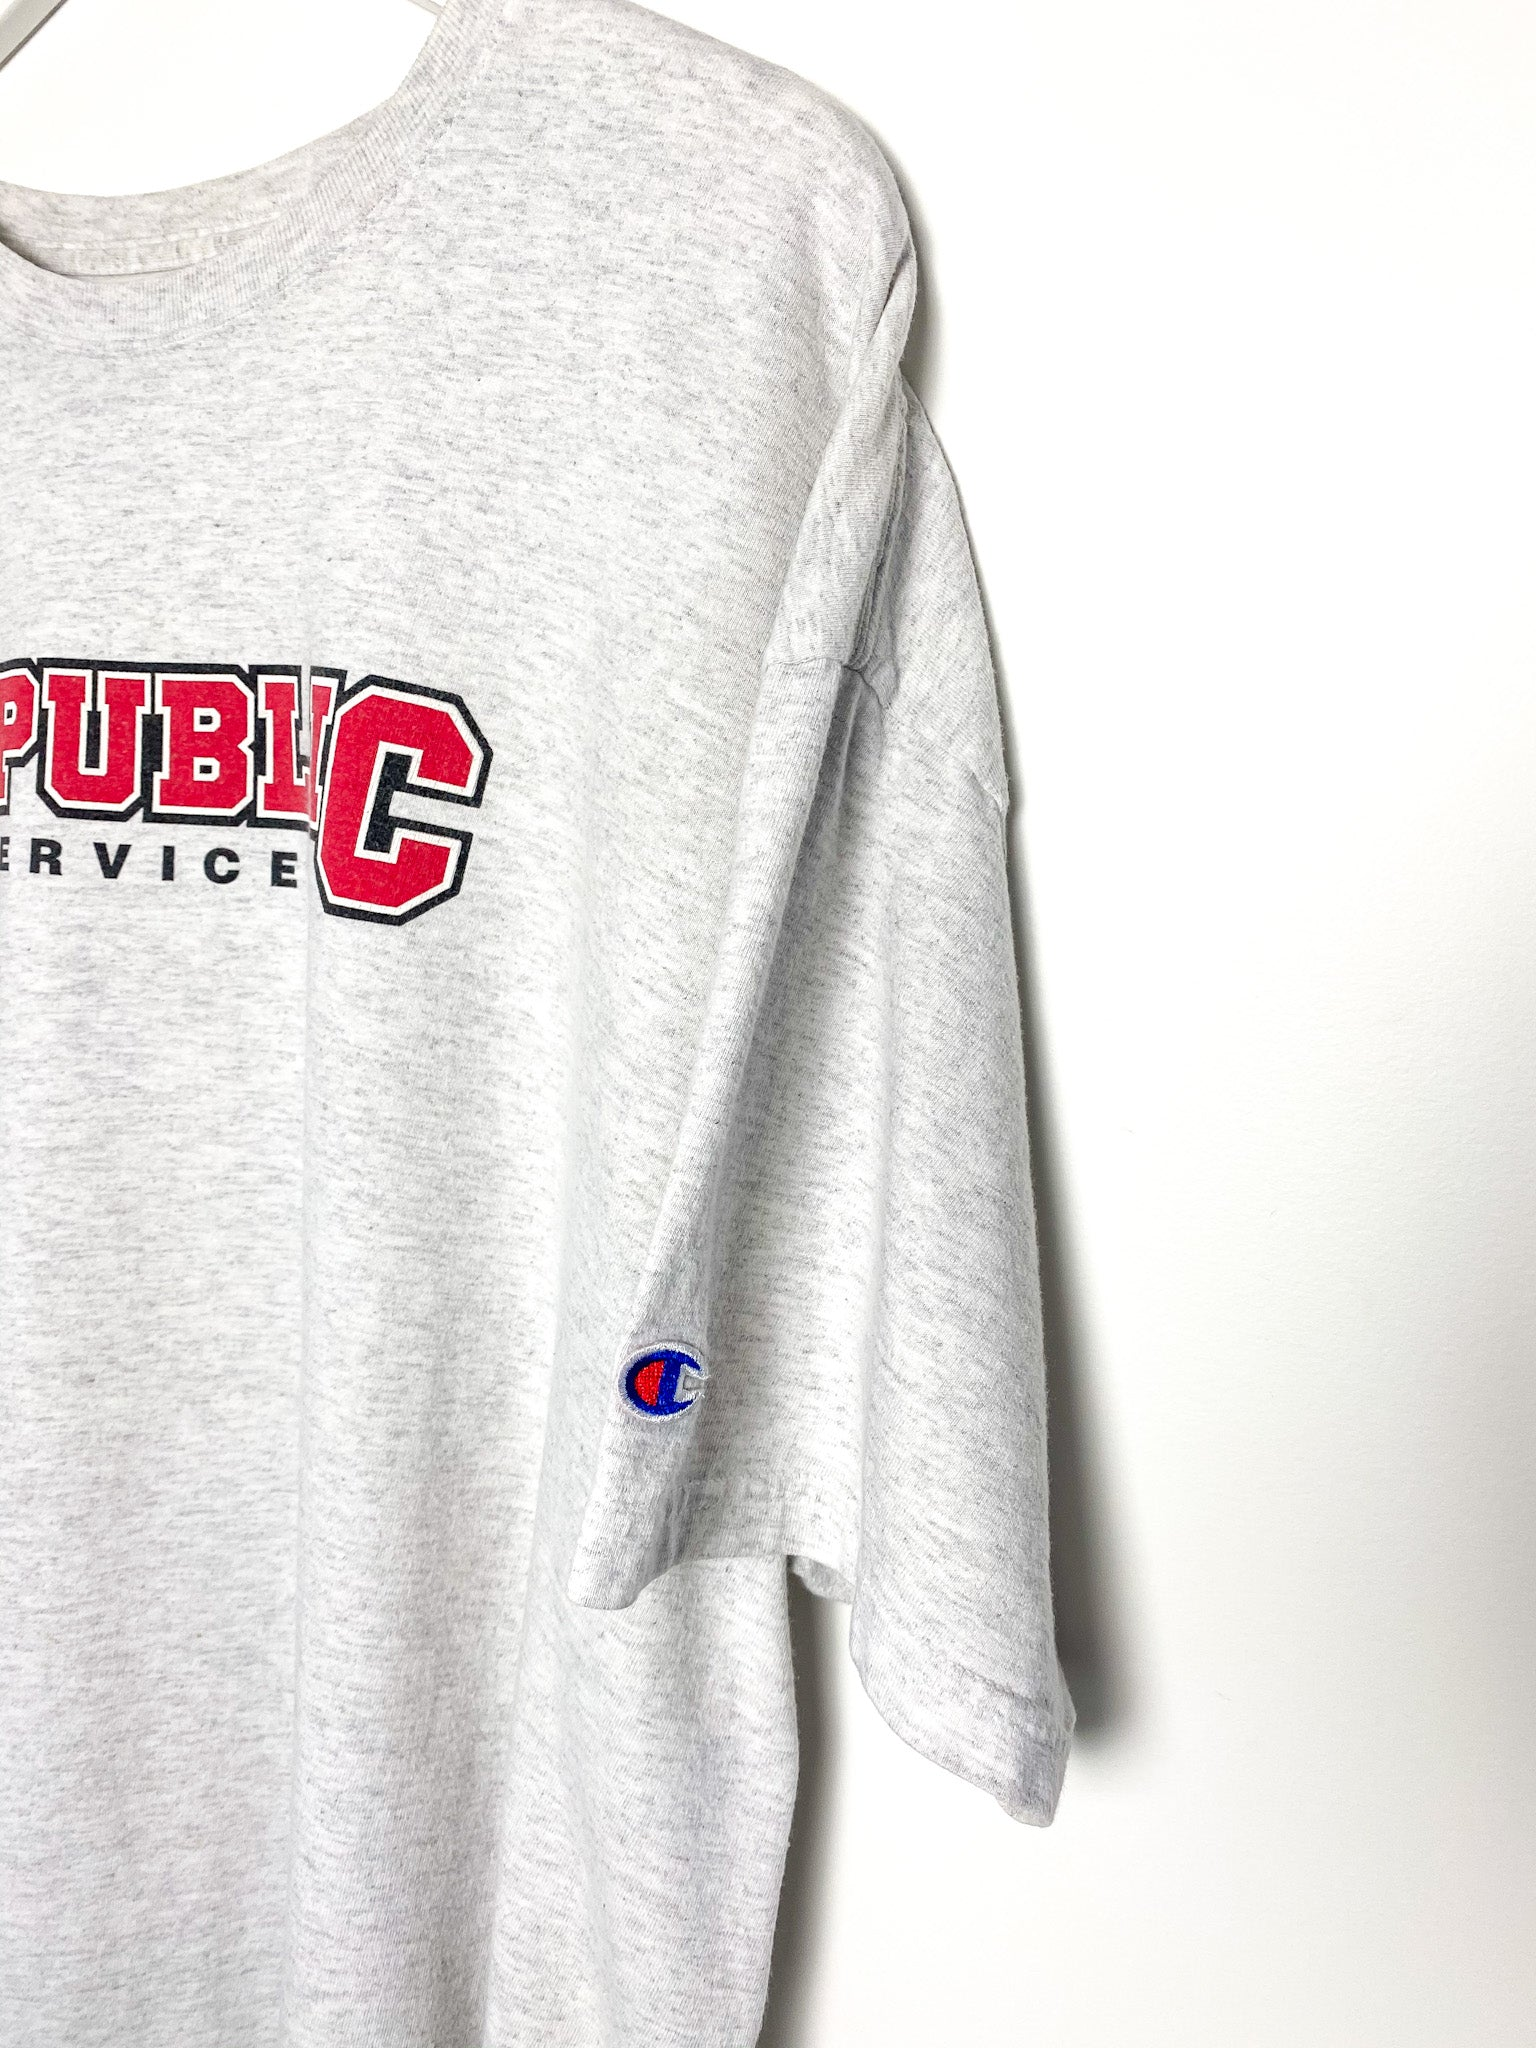 CHAMPION REPUBLIC SERVICES T-SHIRT (2XL)